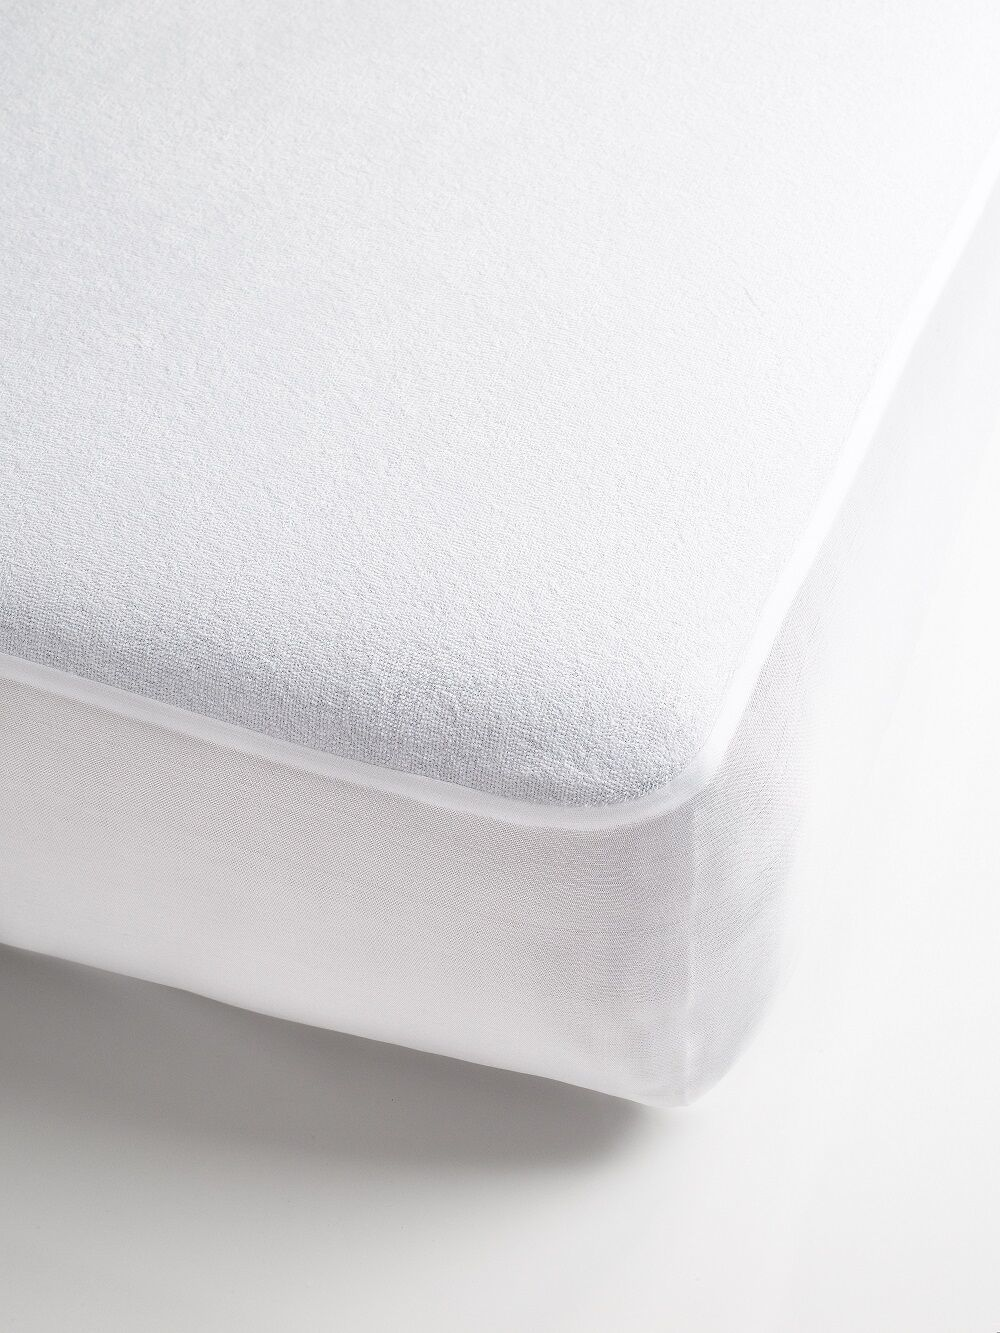 Brolly Sheets: Waterproof Towelling Mattress Protector - Super King image